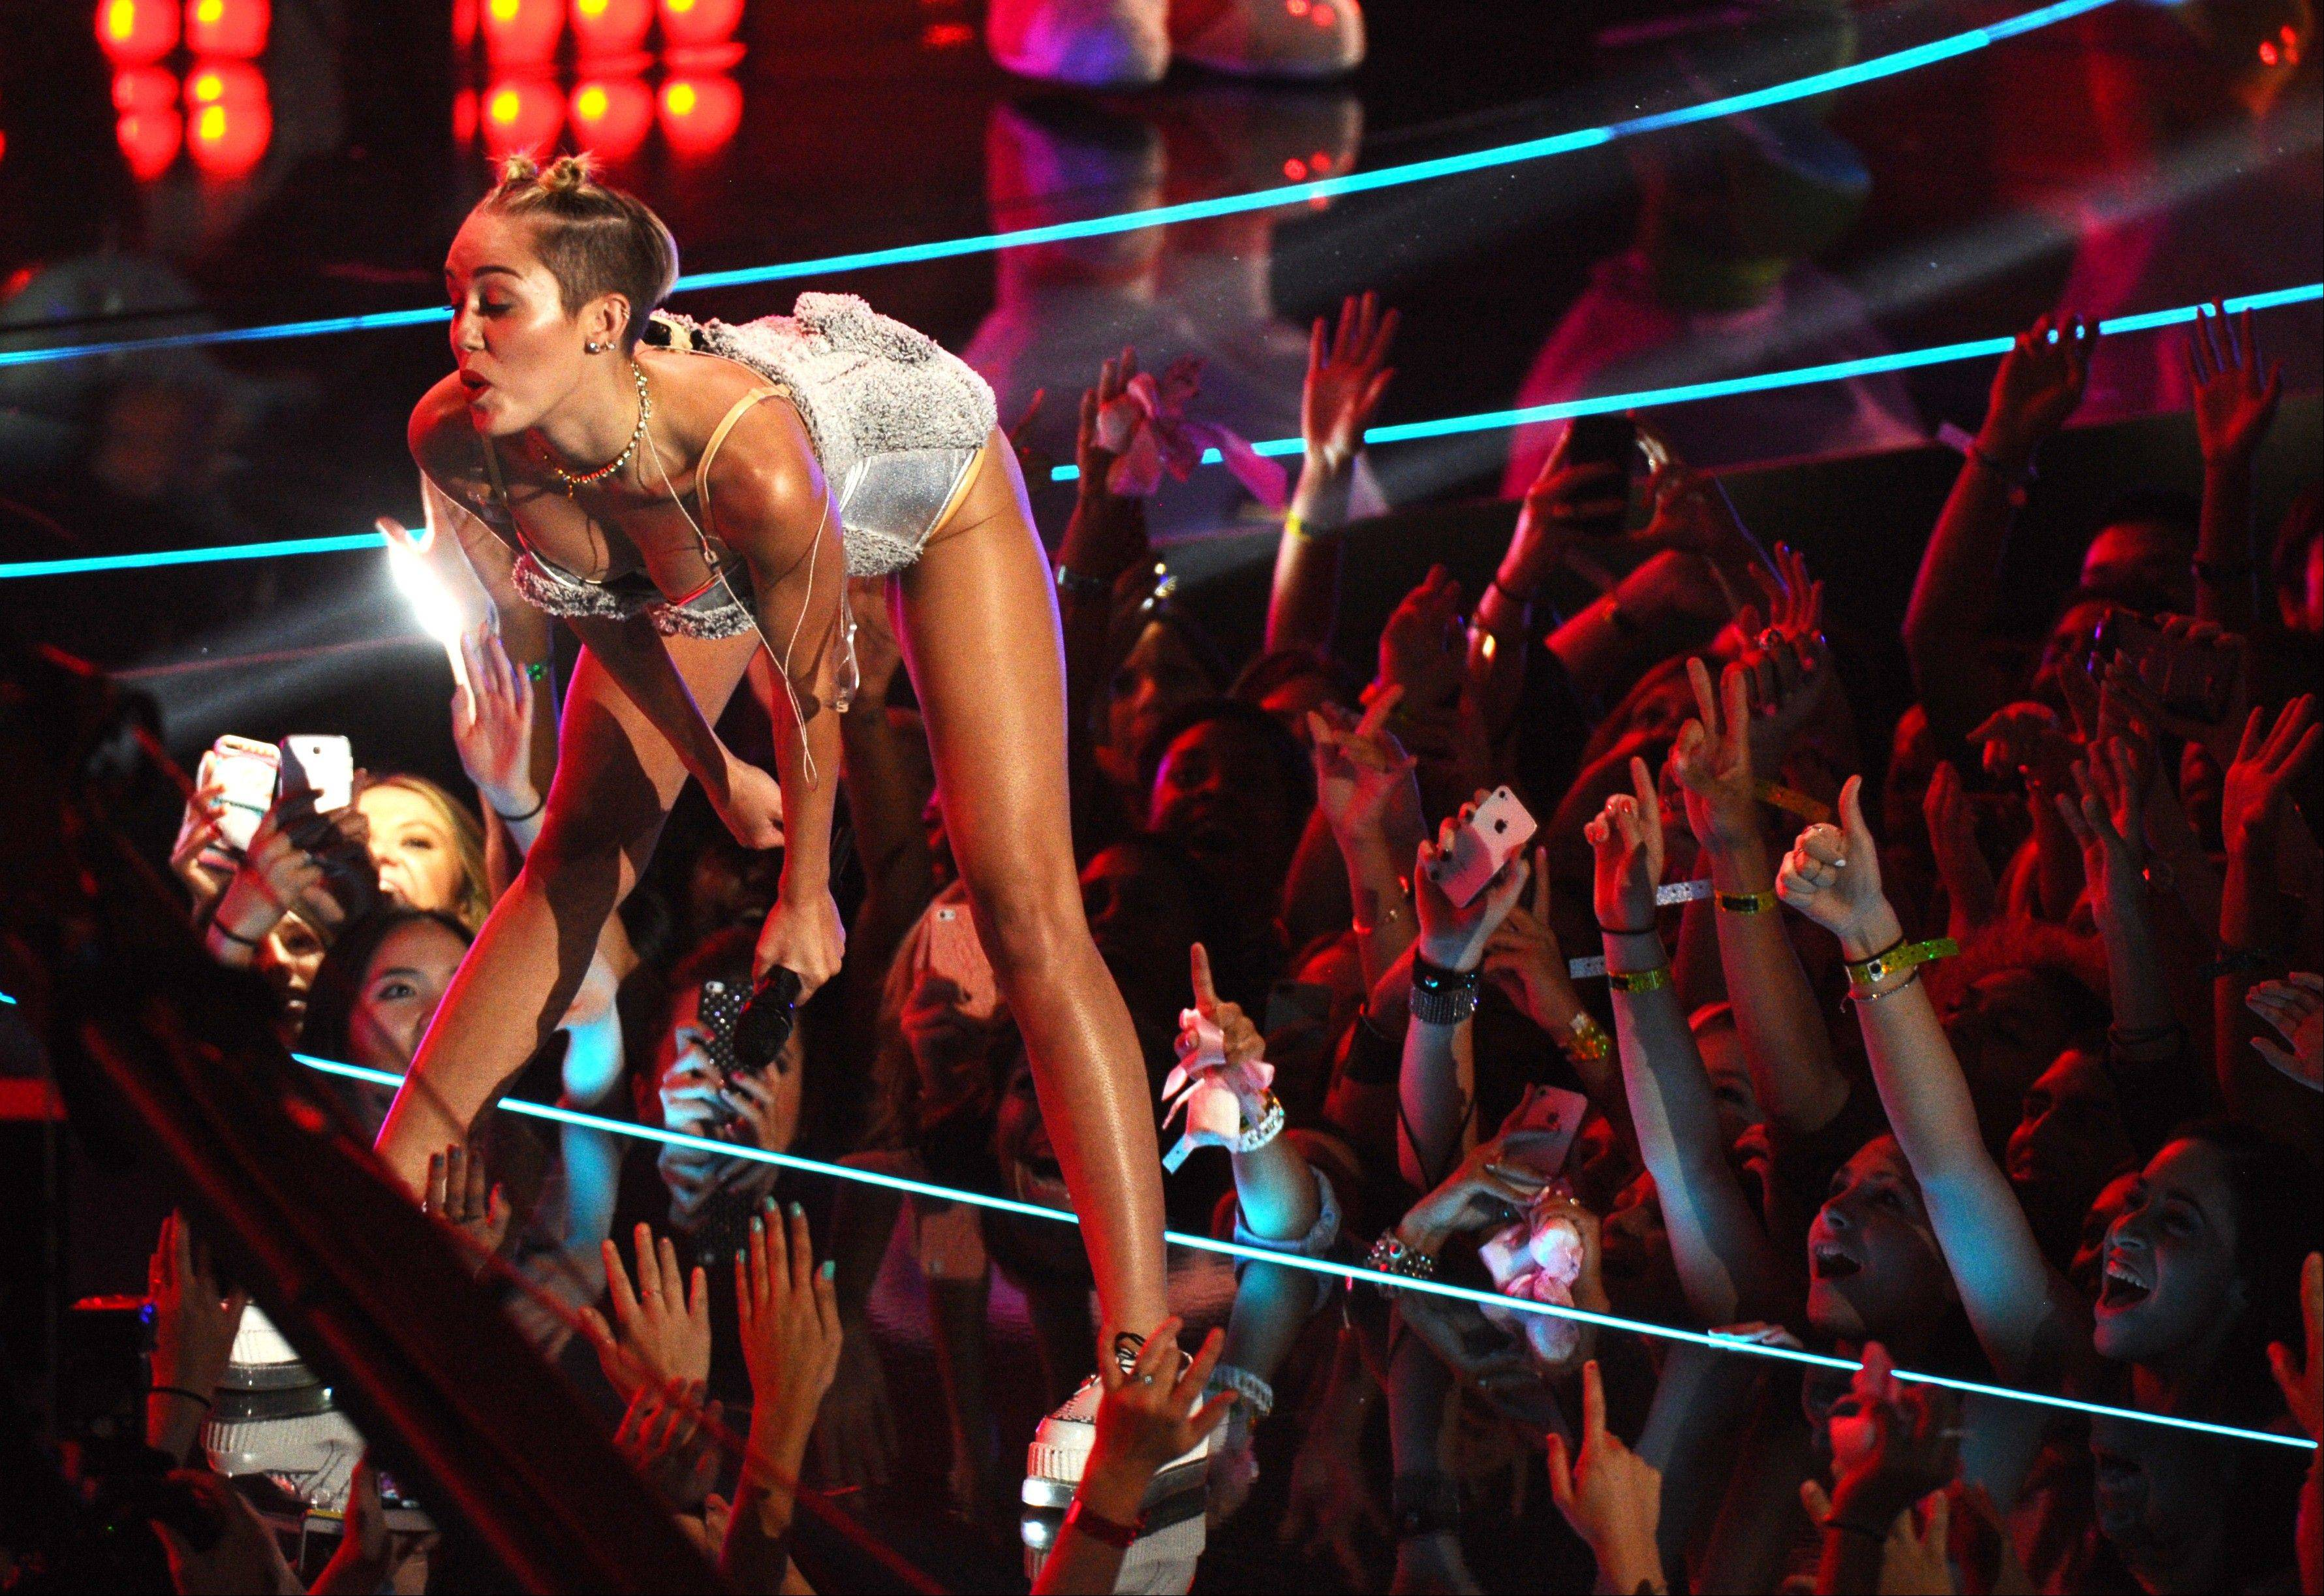 Miley Cyrus performs at the MTV Video Music Awards at the Barclays Center in New York.